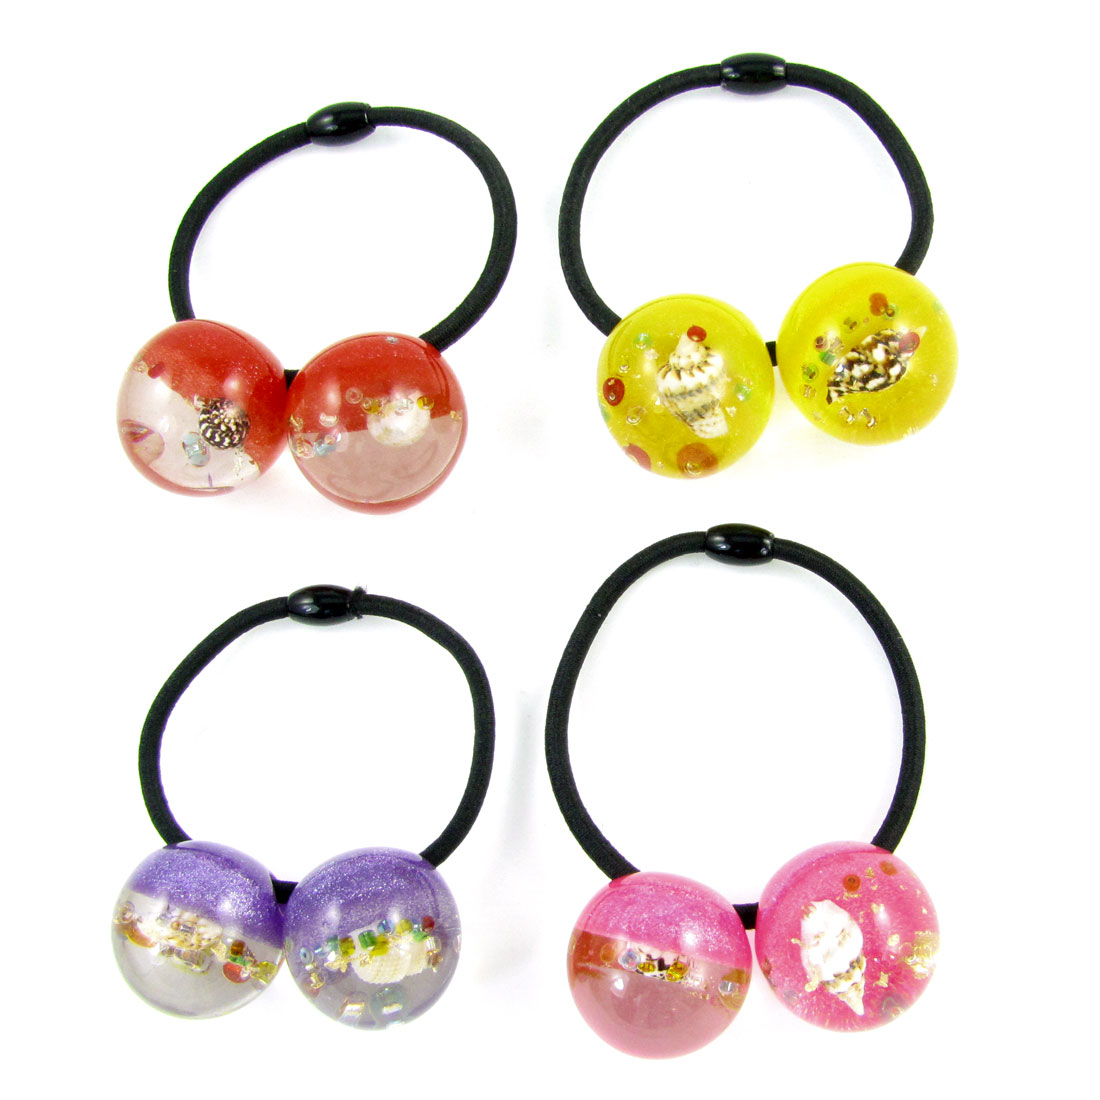 4pcs Girl Conch Glittery Powder Inlaid Colored Beads Decor Stretchy Hair Band Tie